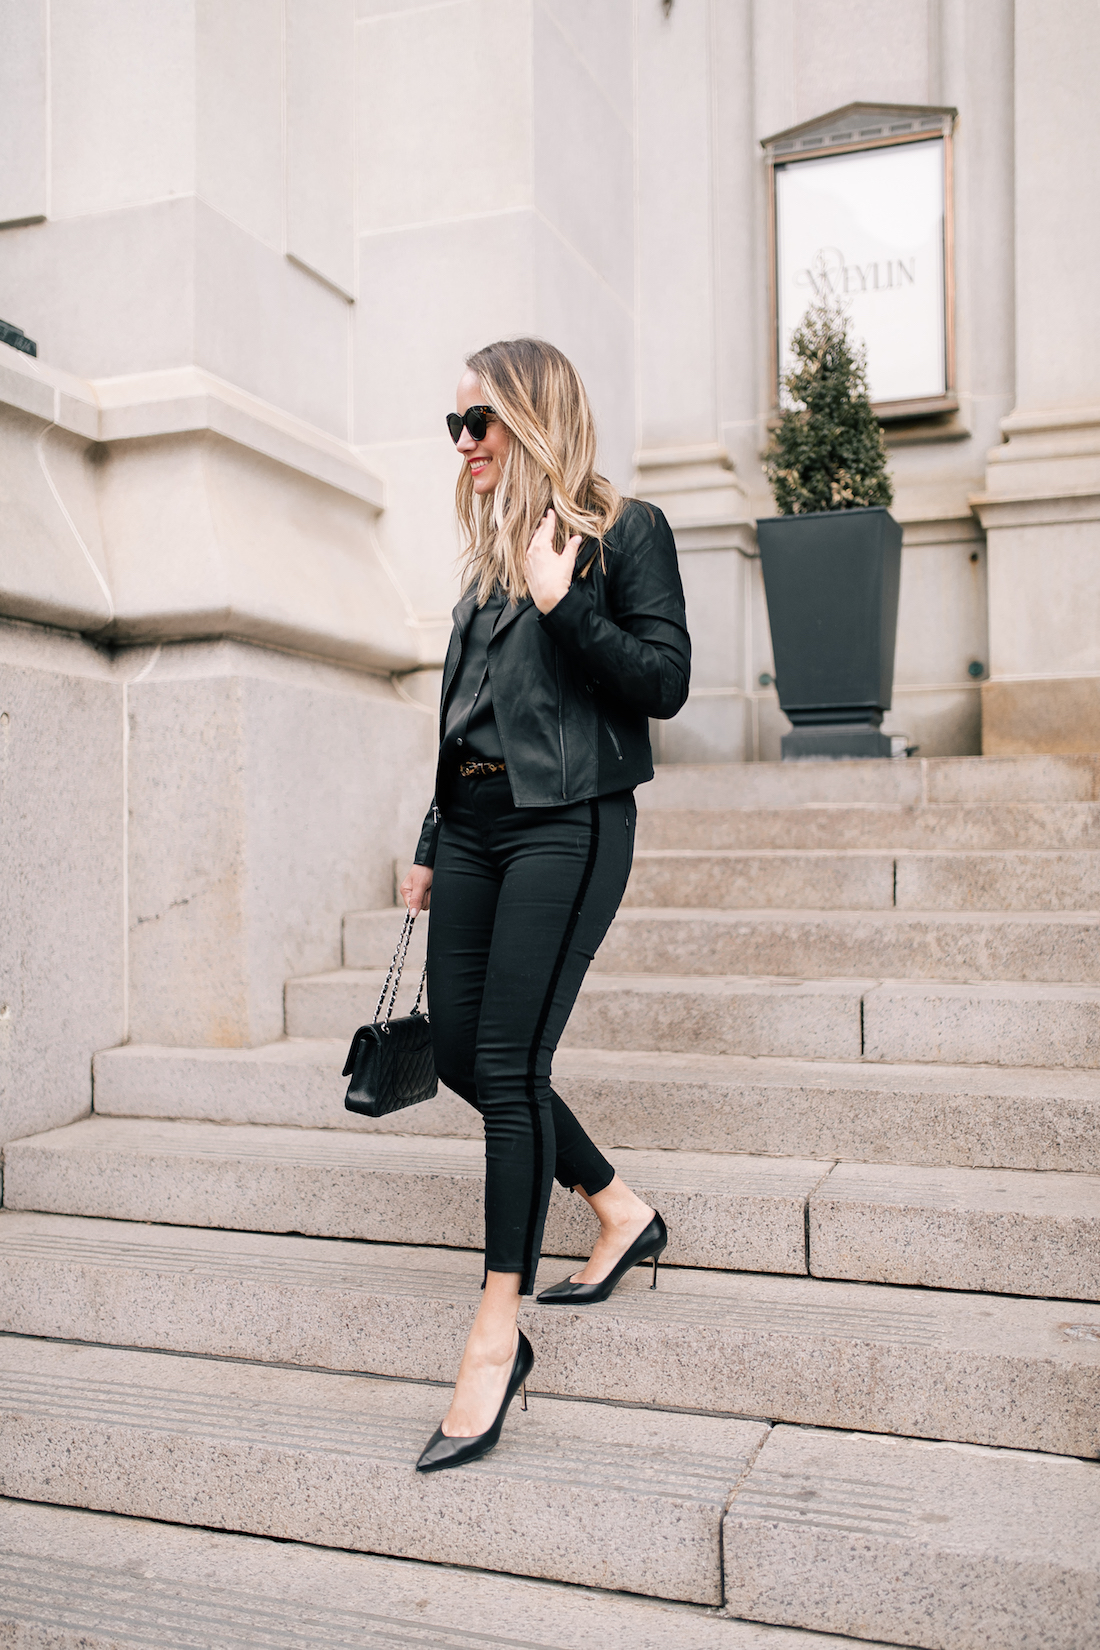 A Black Outfit & The Perfect Pump - Sarah Flint